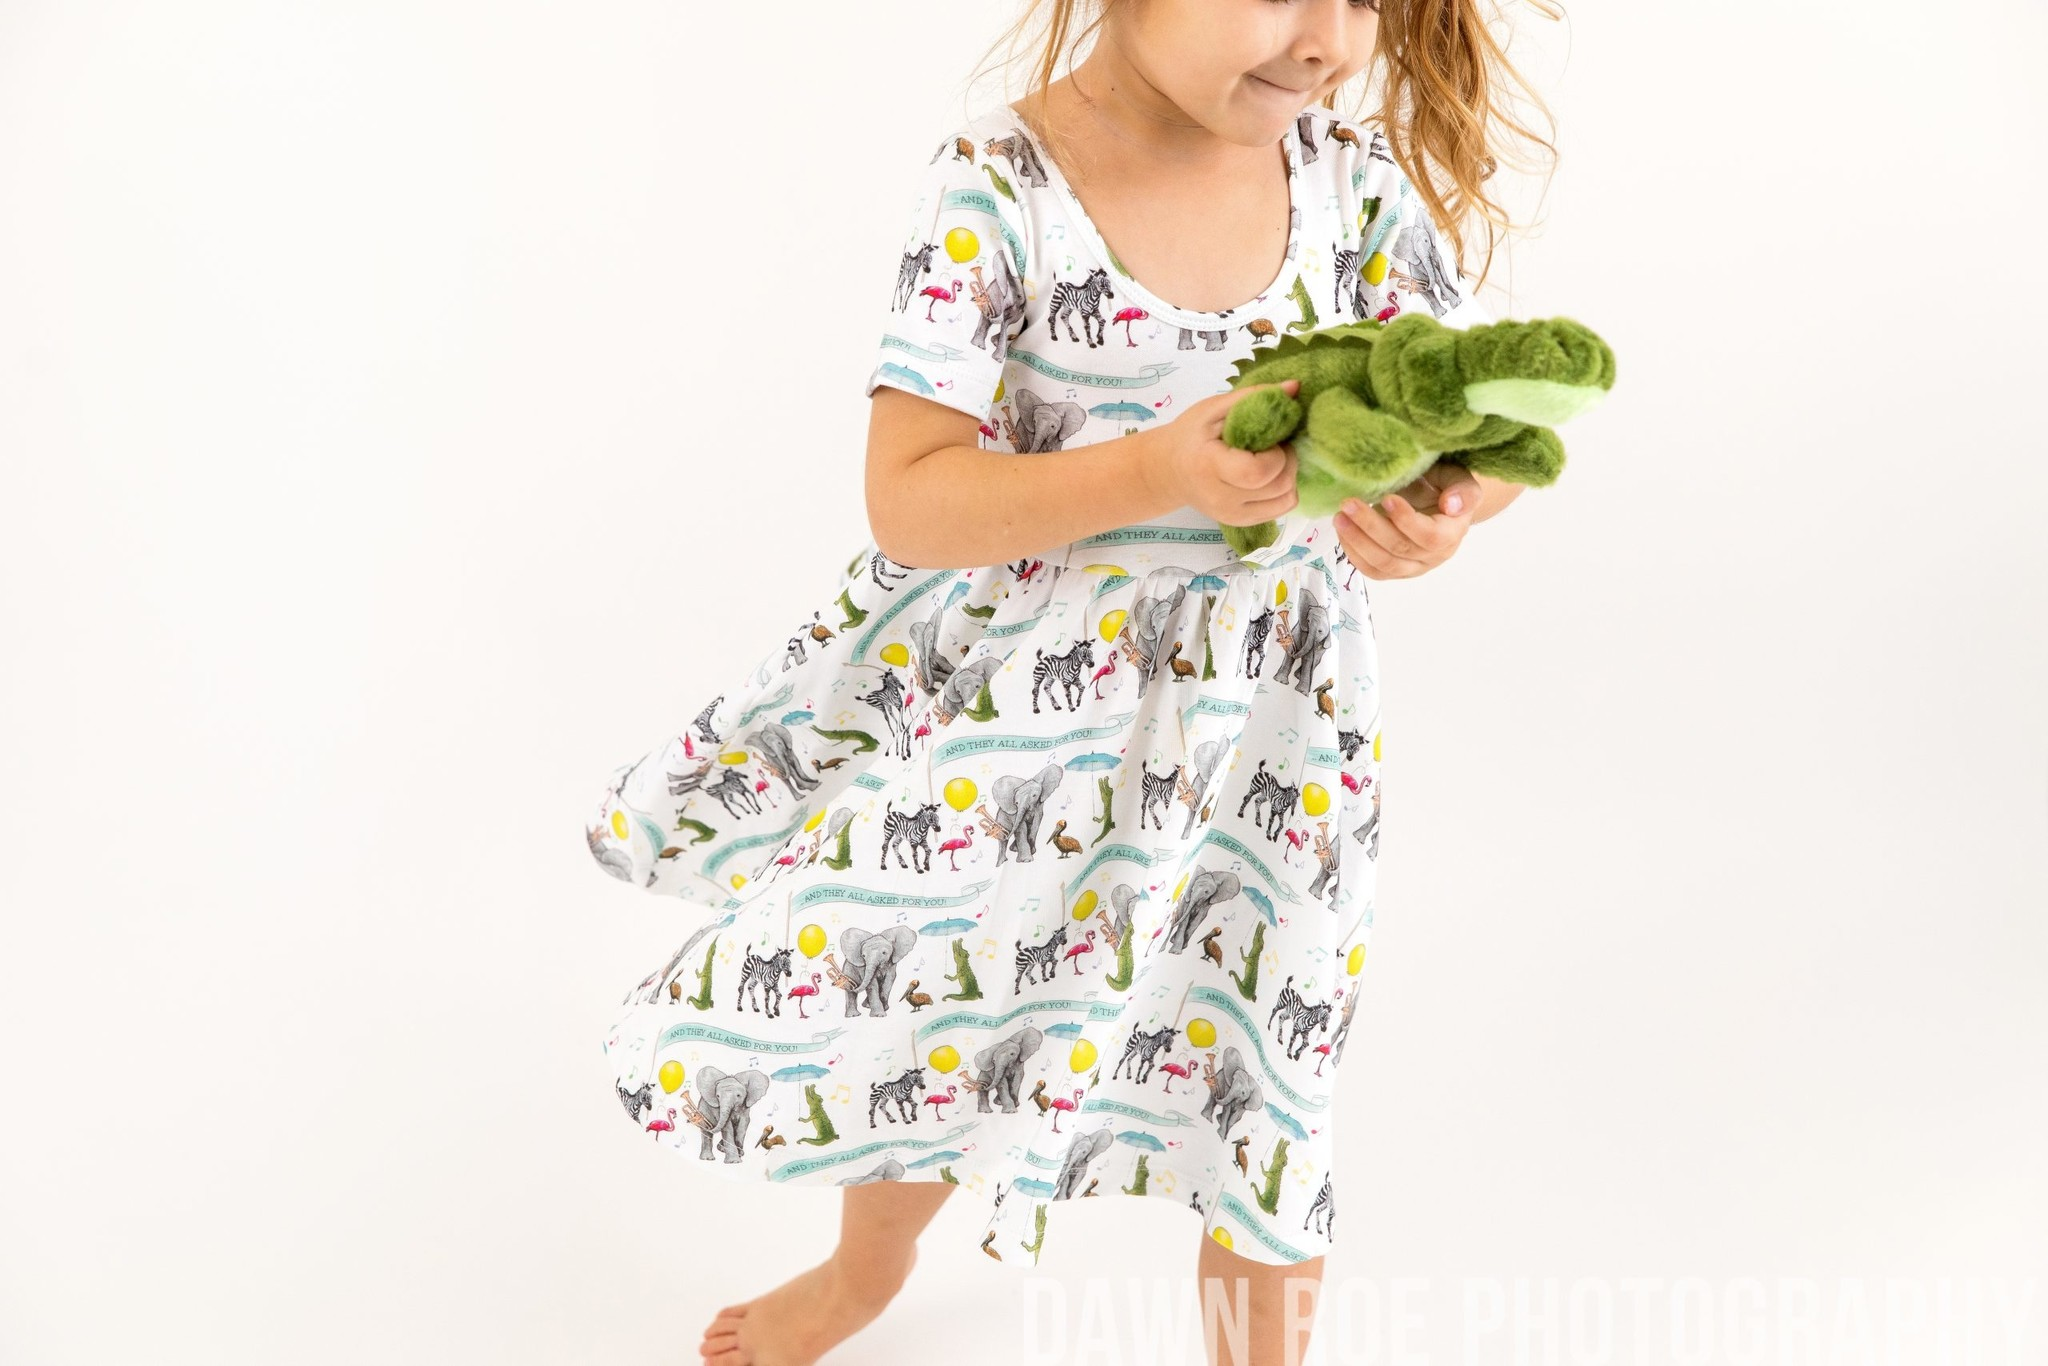 Nola Tawk They All Asked for You Organic Cotton Dress